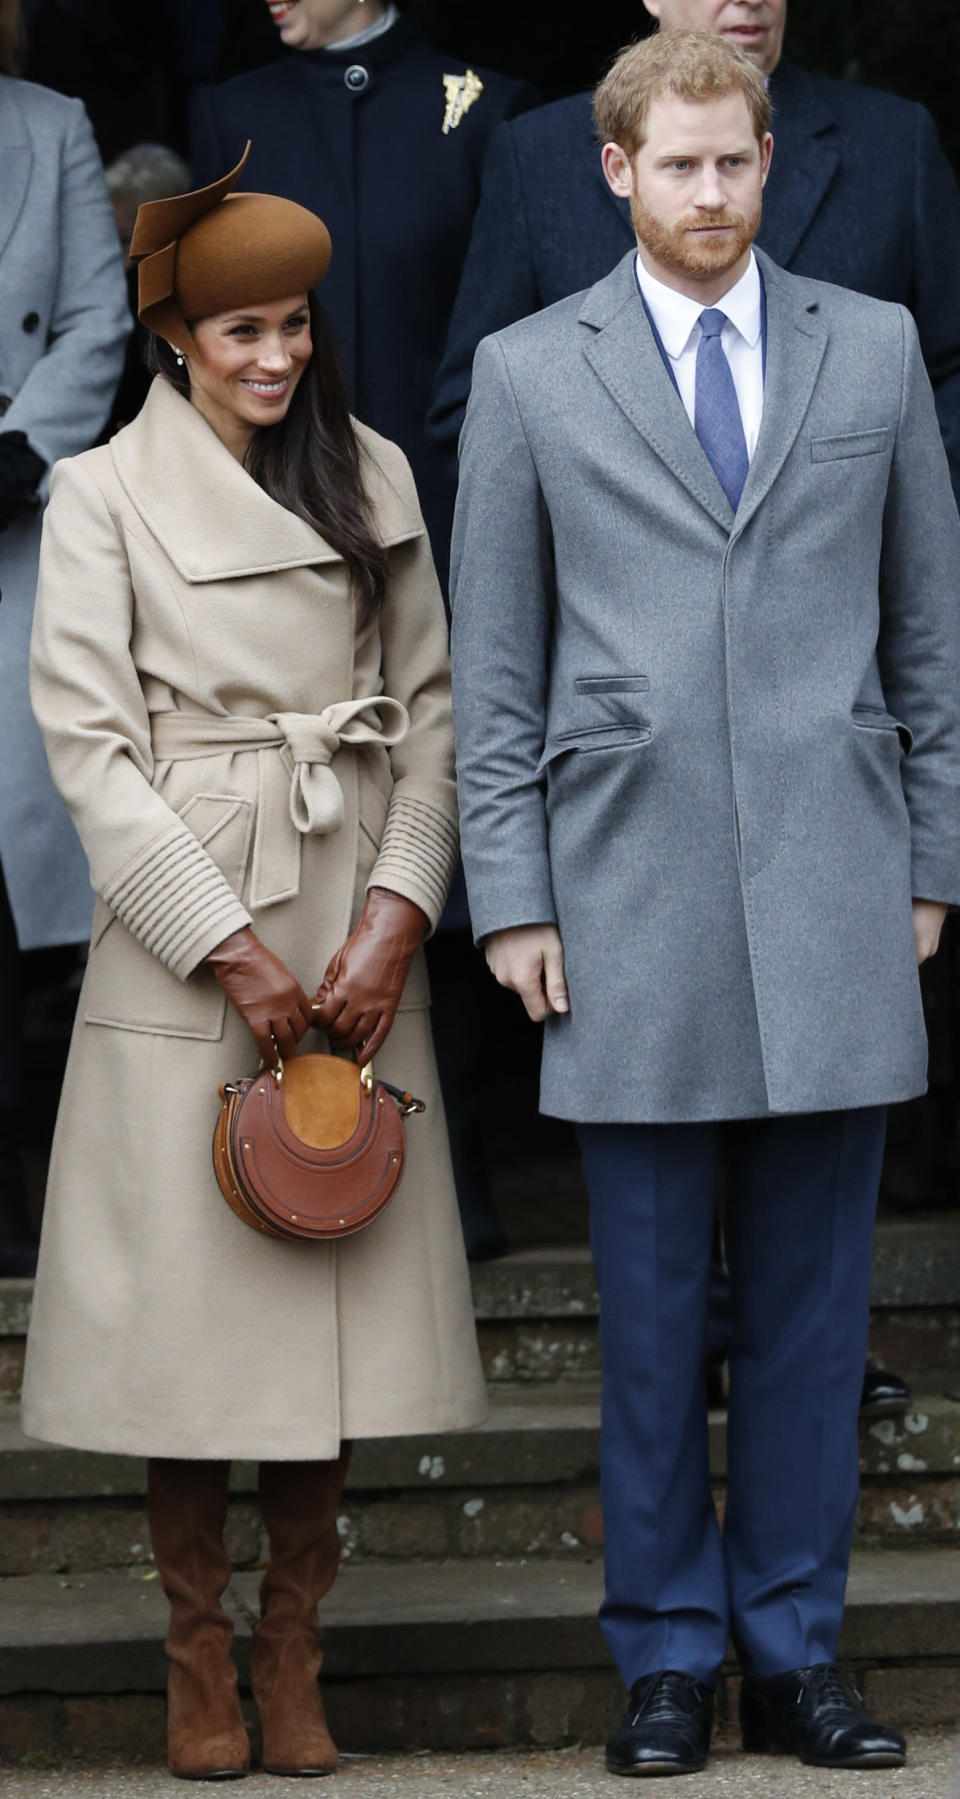 <p>For her first Christmas Day church service with the royals, Meghan chose a £986 camel coat by Canadian brand Sentaler paired with a a £900 circle bag by Chloe and £630 brown suede Stuart Weitzman boots. Her stand-out hat is thought to be by royal milliner Jane Taylor. <i>[Photo: Getty]</i> </p>